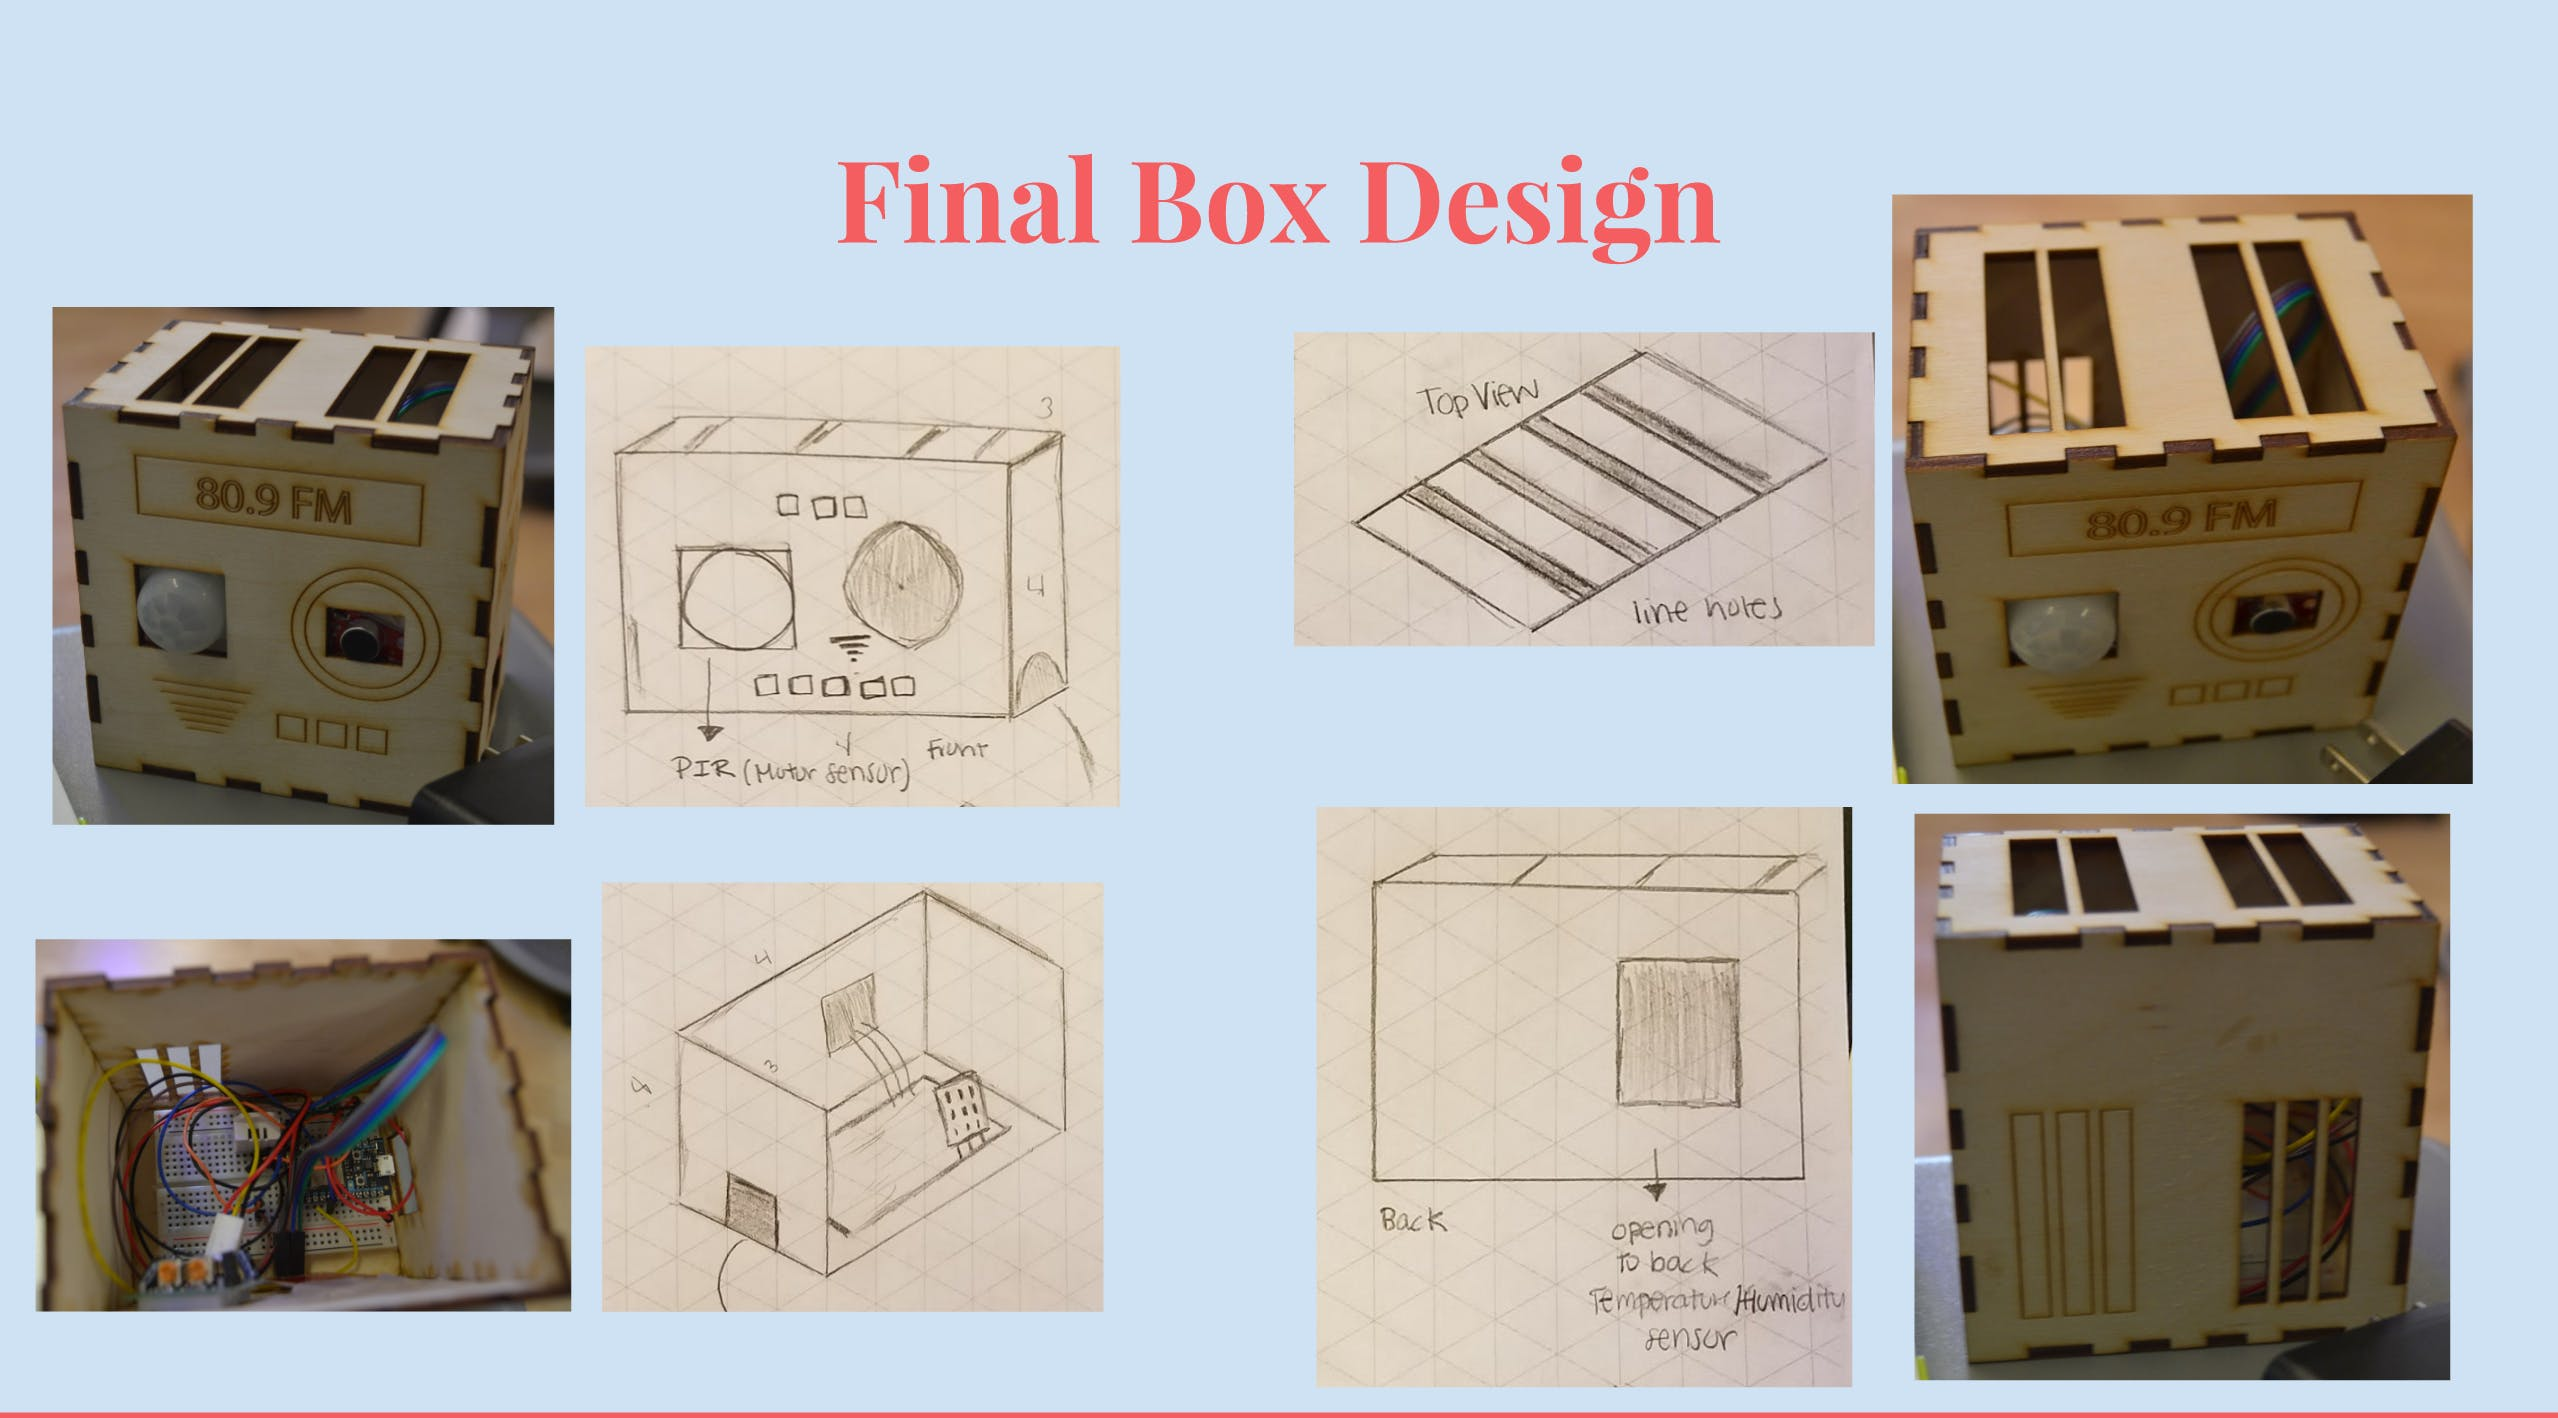 Entire Box Design next to original sketches